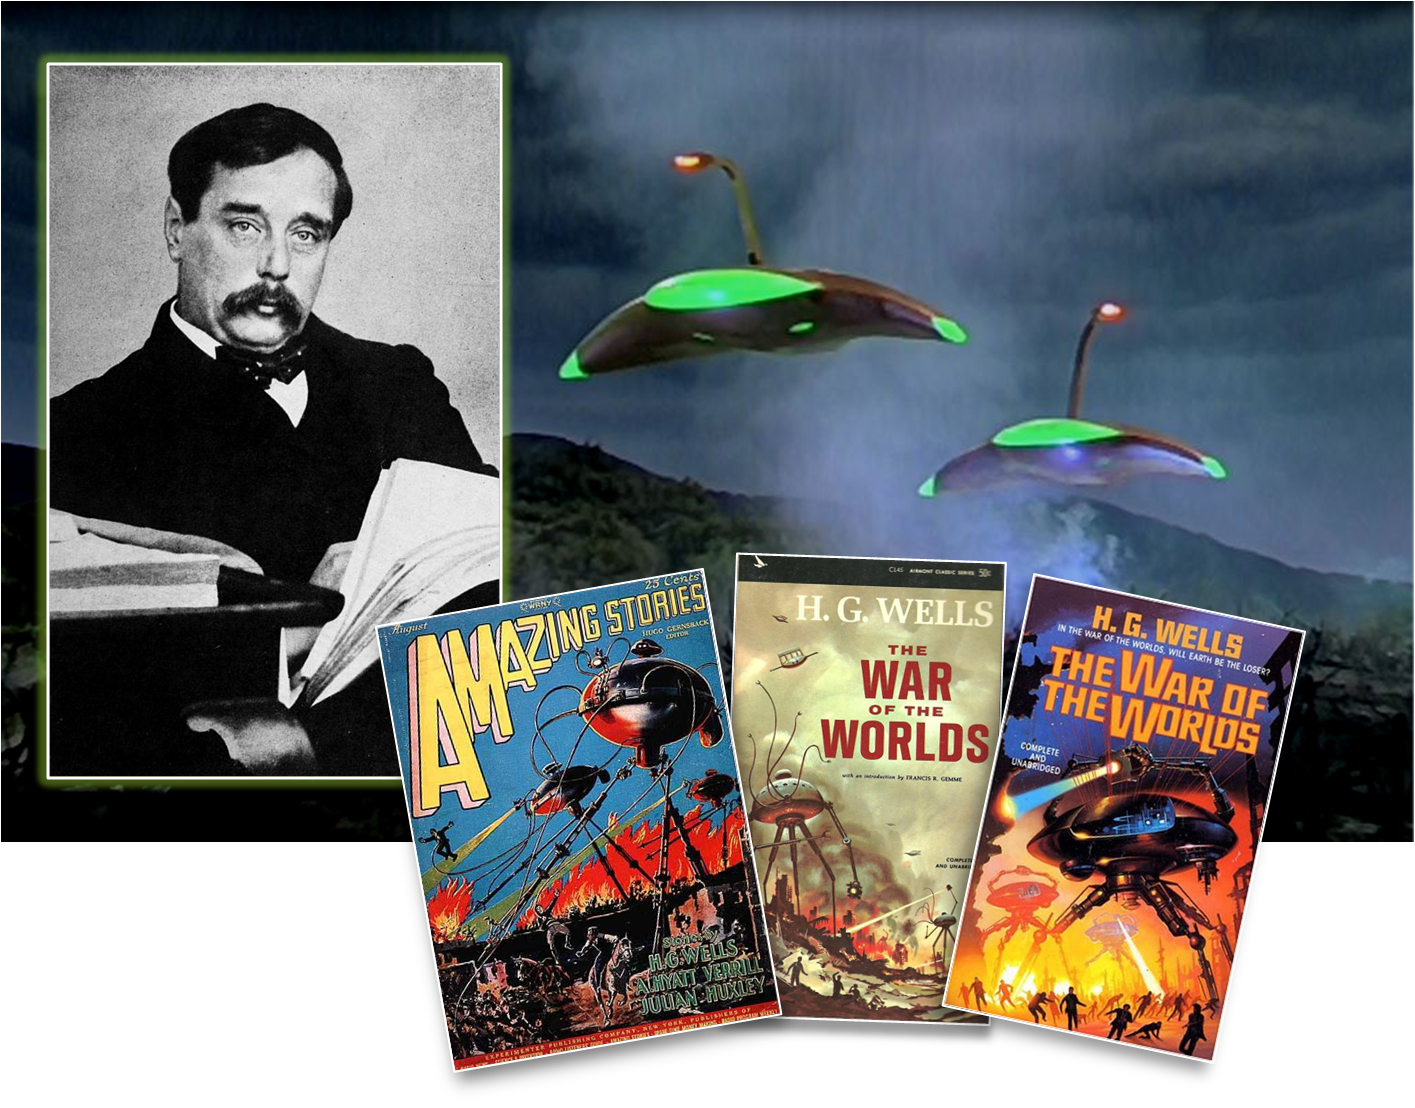 H.G. Wells created the alien invasion genre